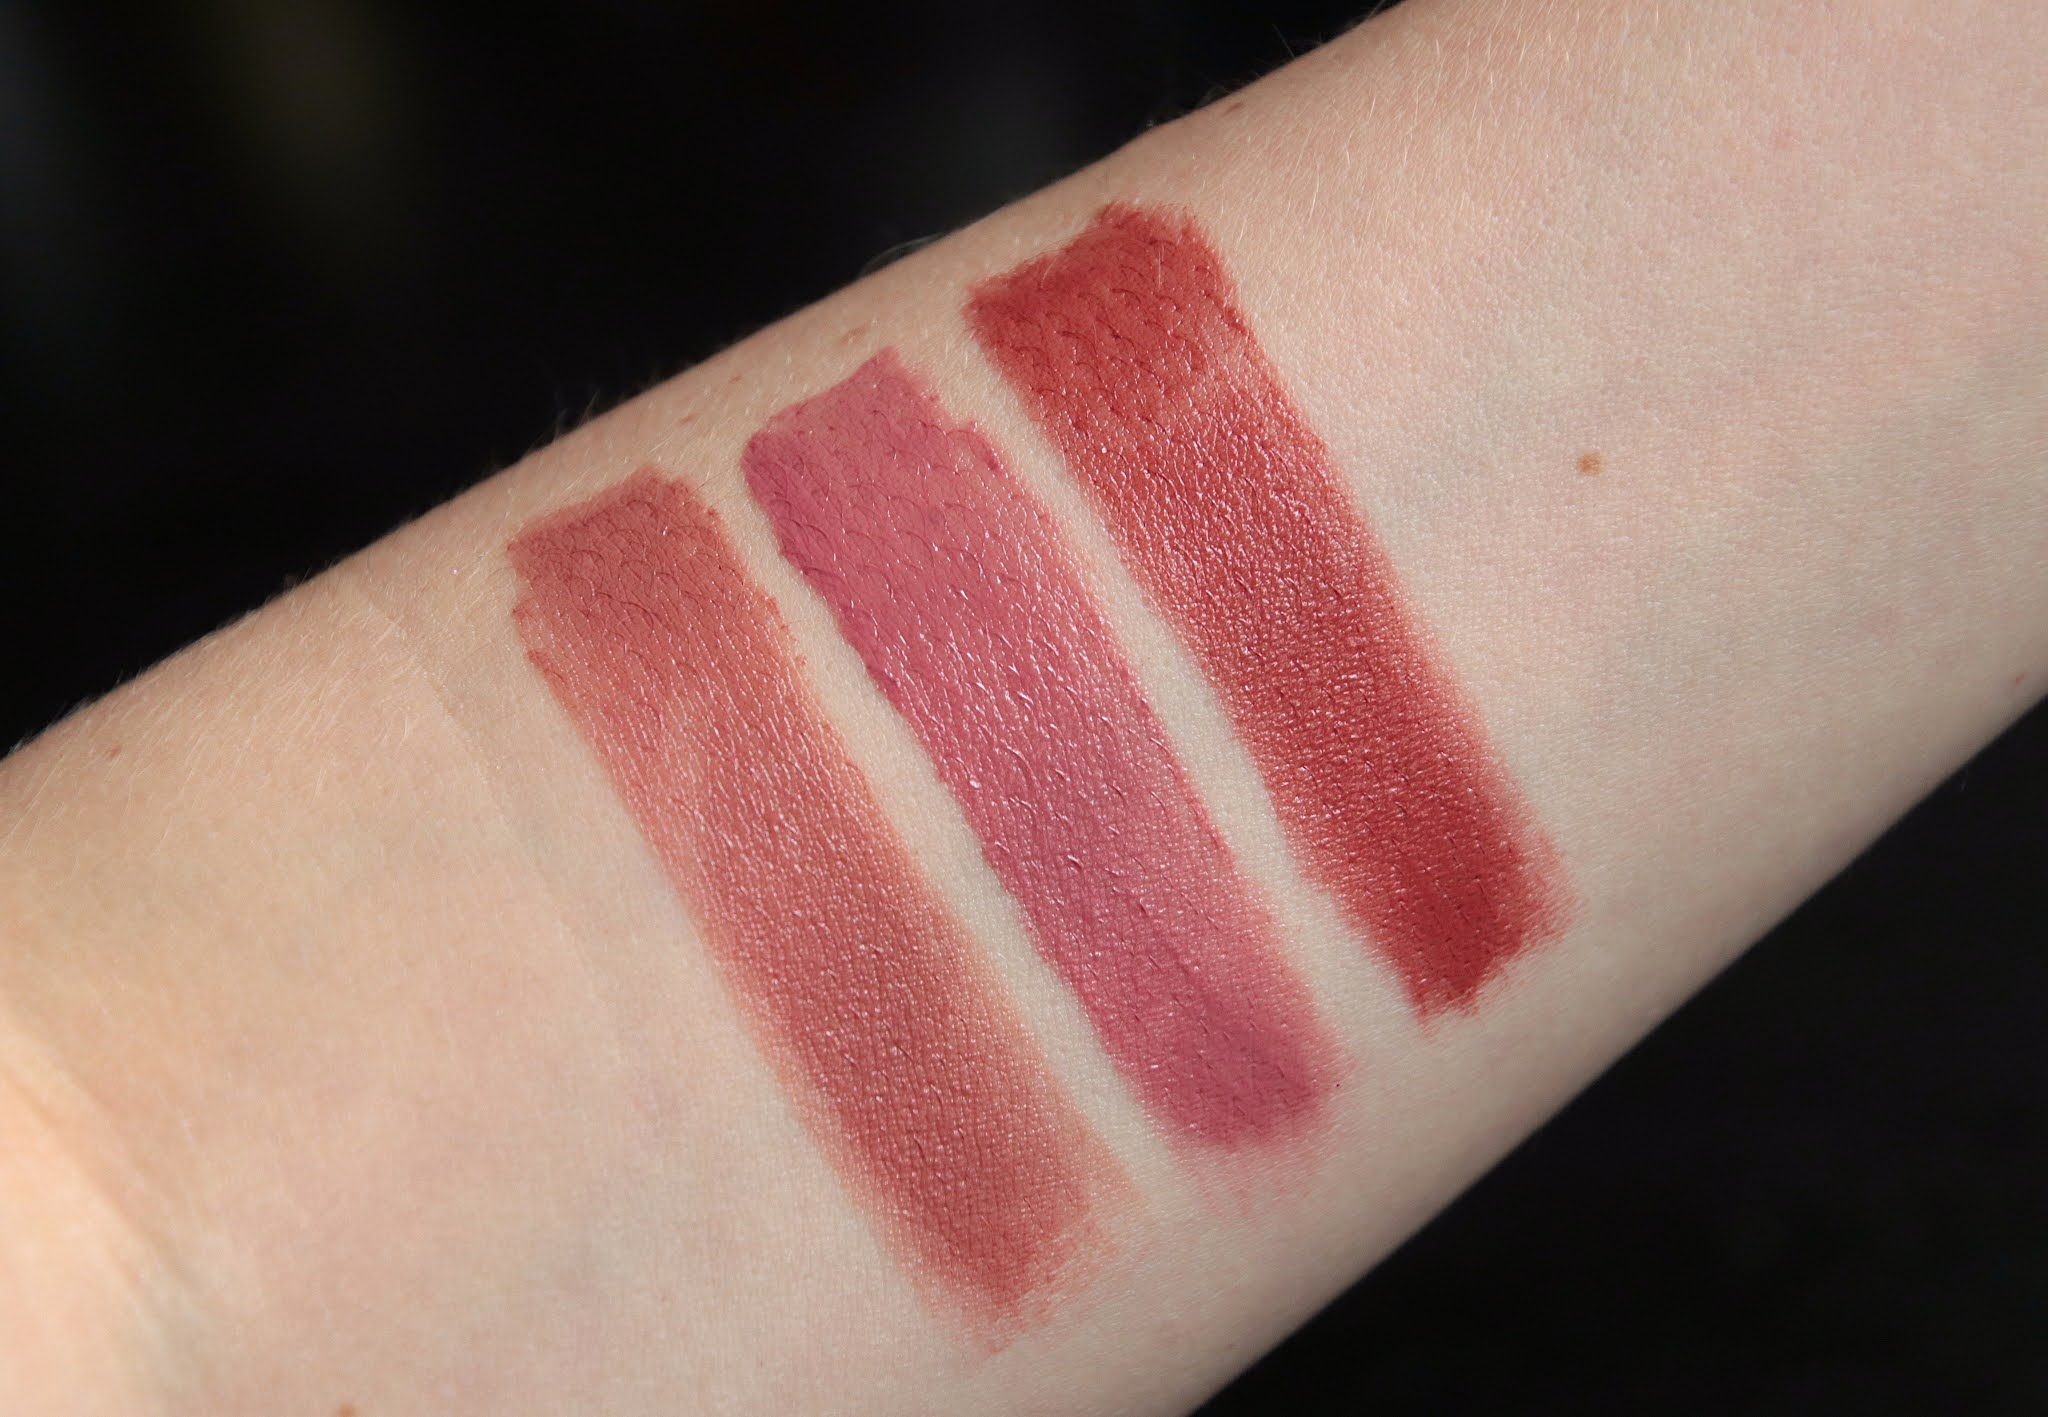 By Terry 4 dare to bare 5 secret kiss 6 love affaire swatch